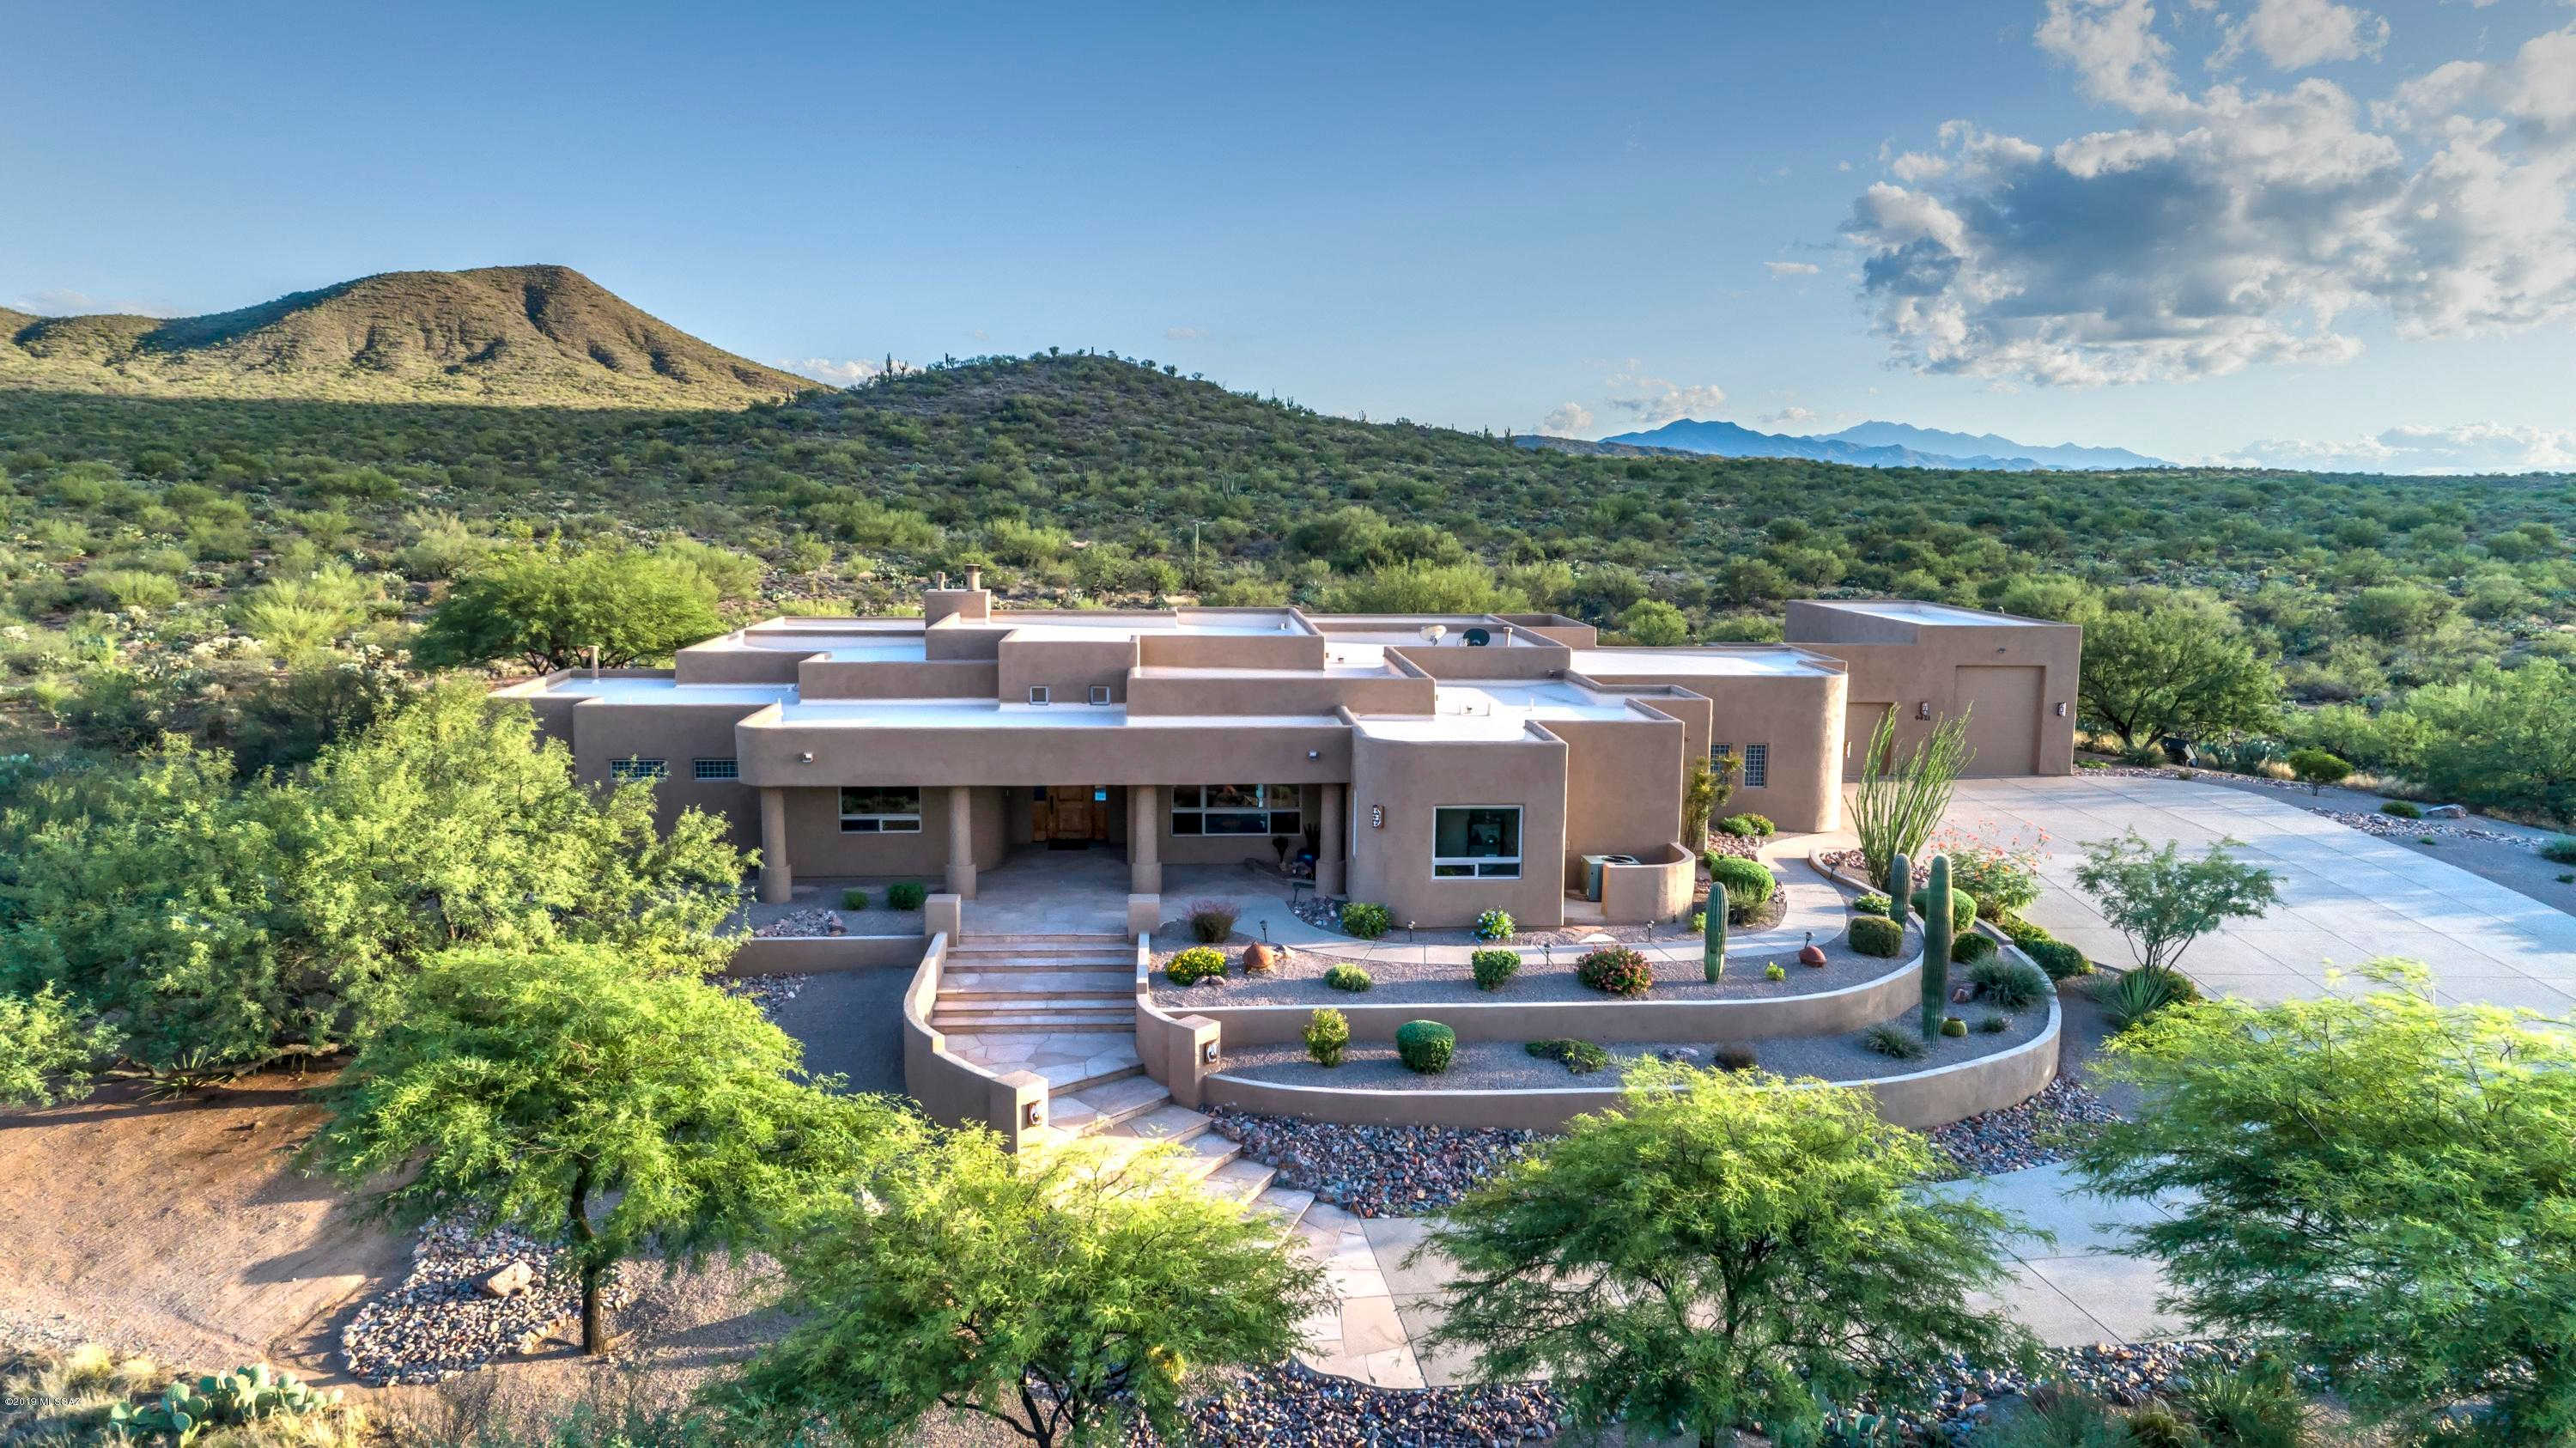 9421 S Old Soldier Trail, Vail, AZ 85641 has an Open House on  Sunday, November 24, 2019 1:00 PM to 4:00 PM